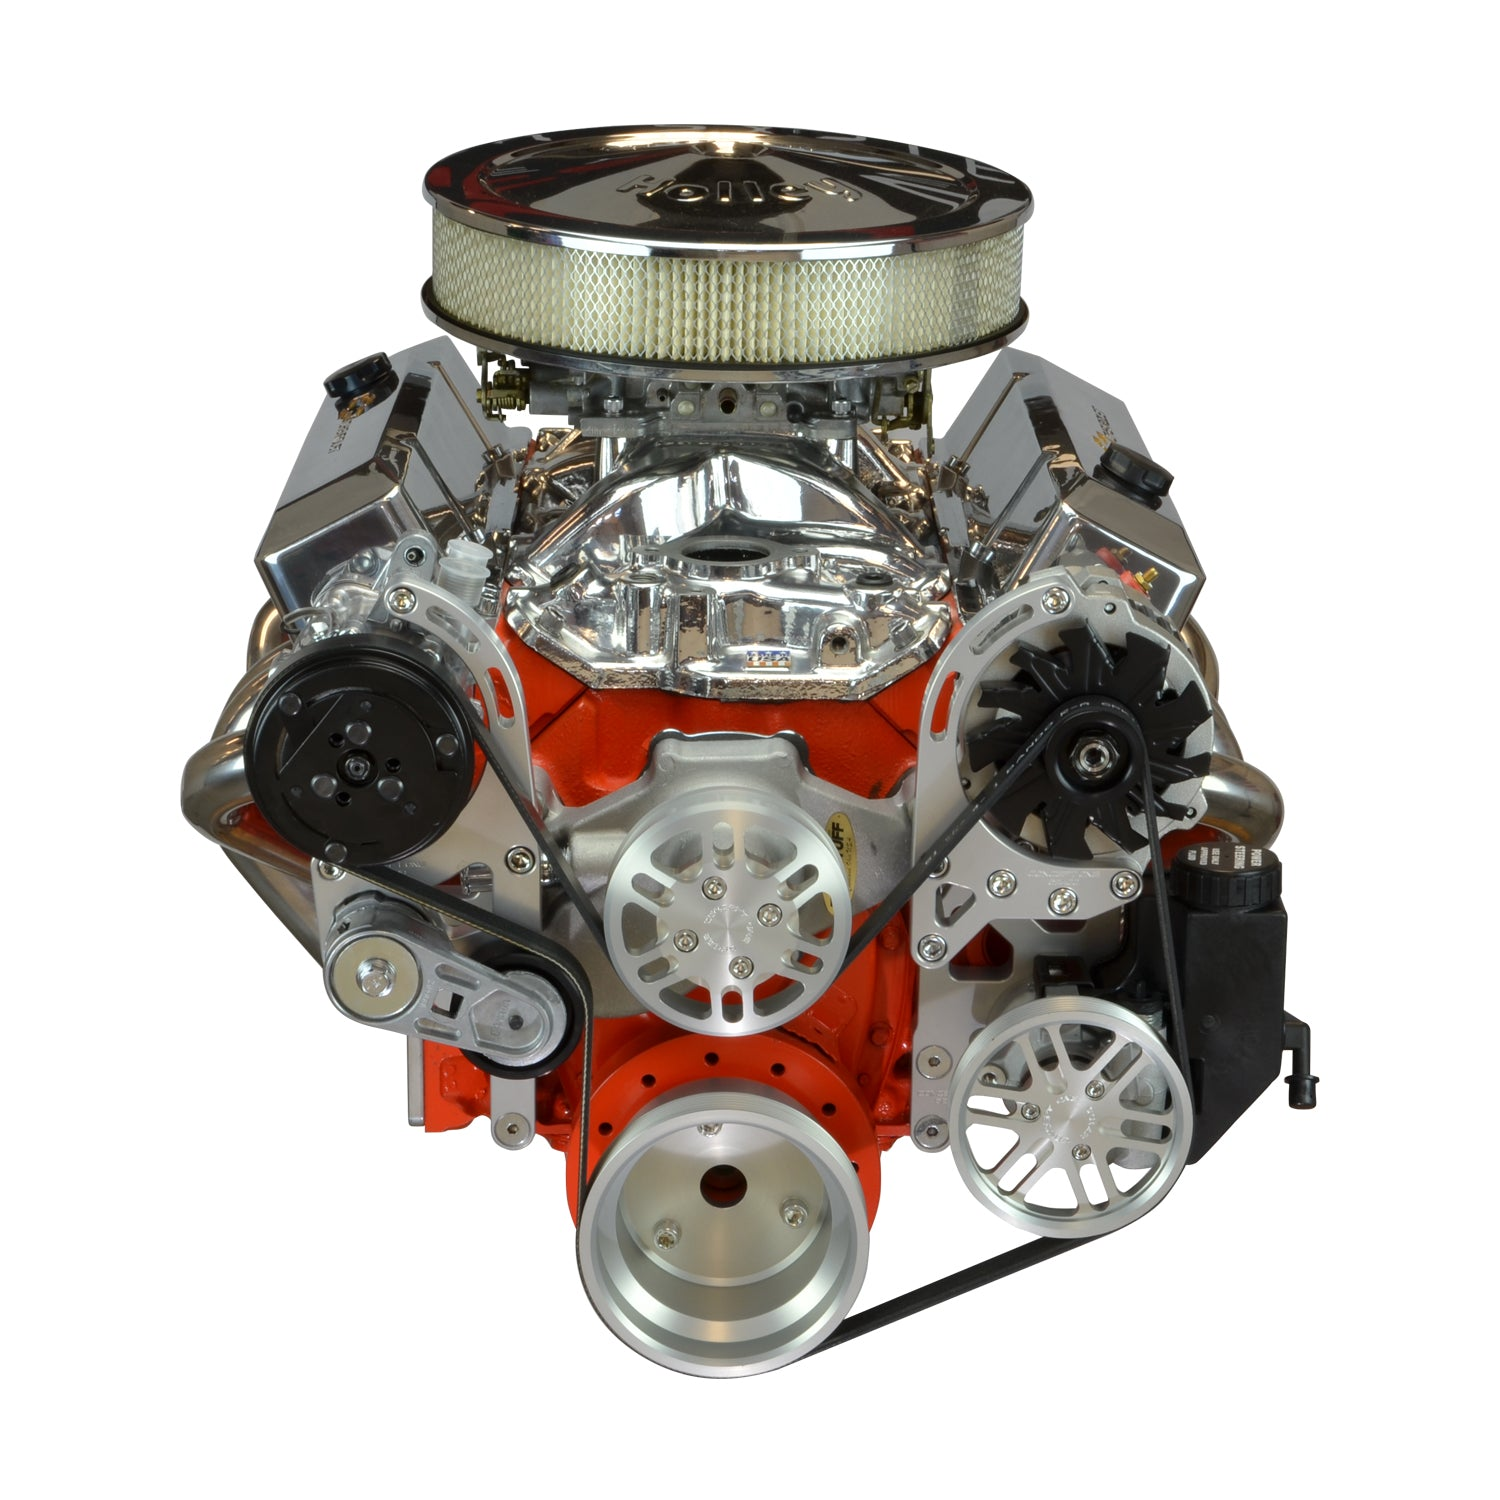 Concept One Pulley Systems: Chevy Small Block Driver Series Kit with Alternator, A/C and Power Steering, front view anodized clear